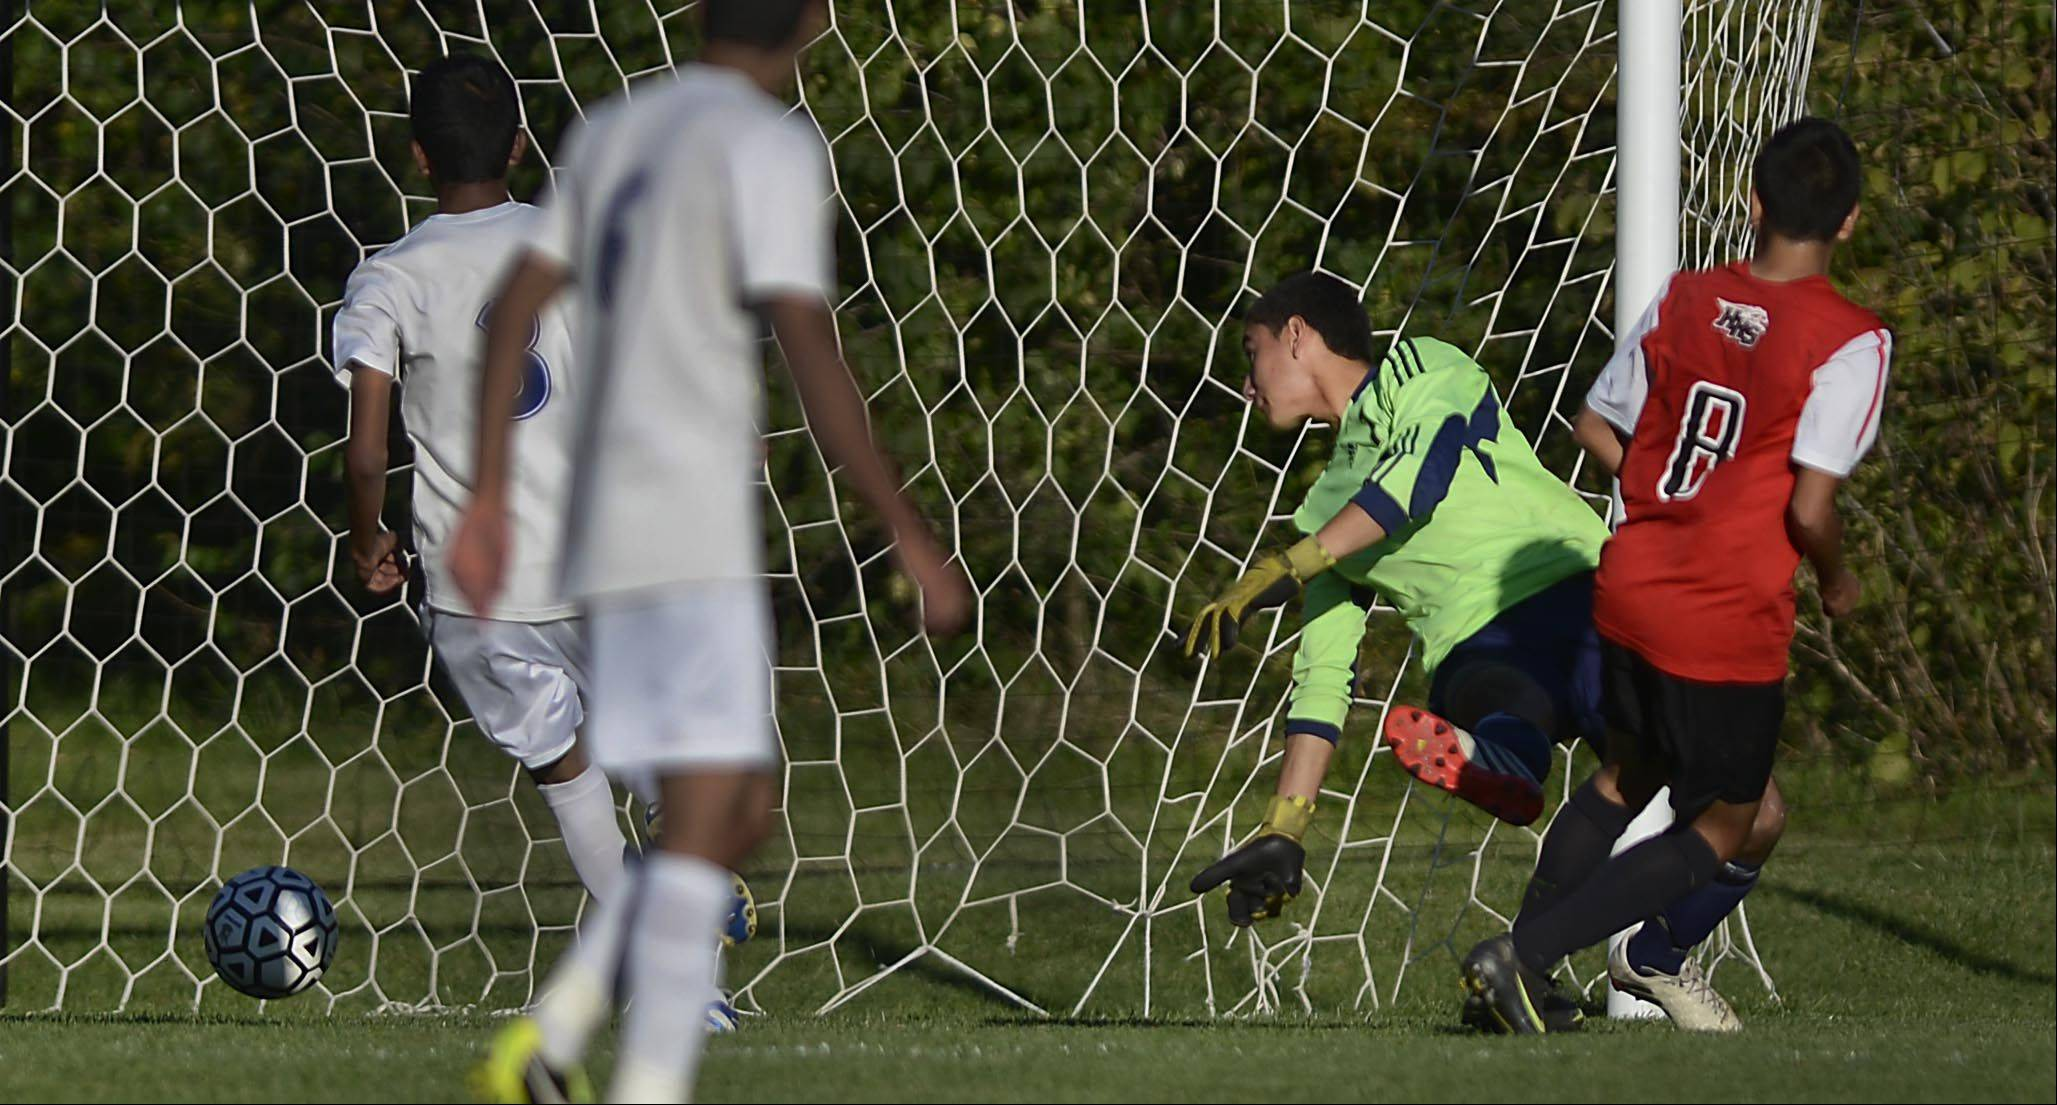 Huntley's Eduardo Gonzalez scores against Dundee-Crown goalkeeper Jose Gonzalez Tuesday in Carpentersville.